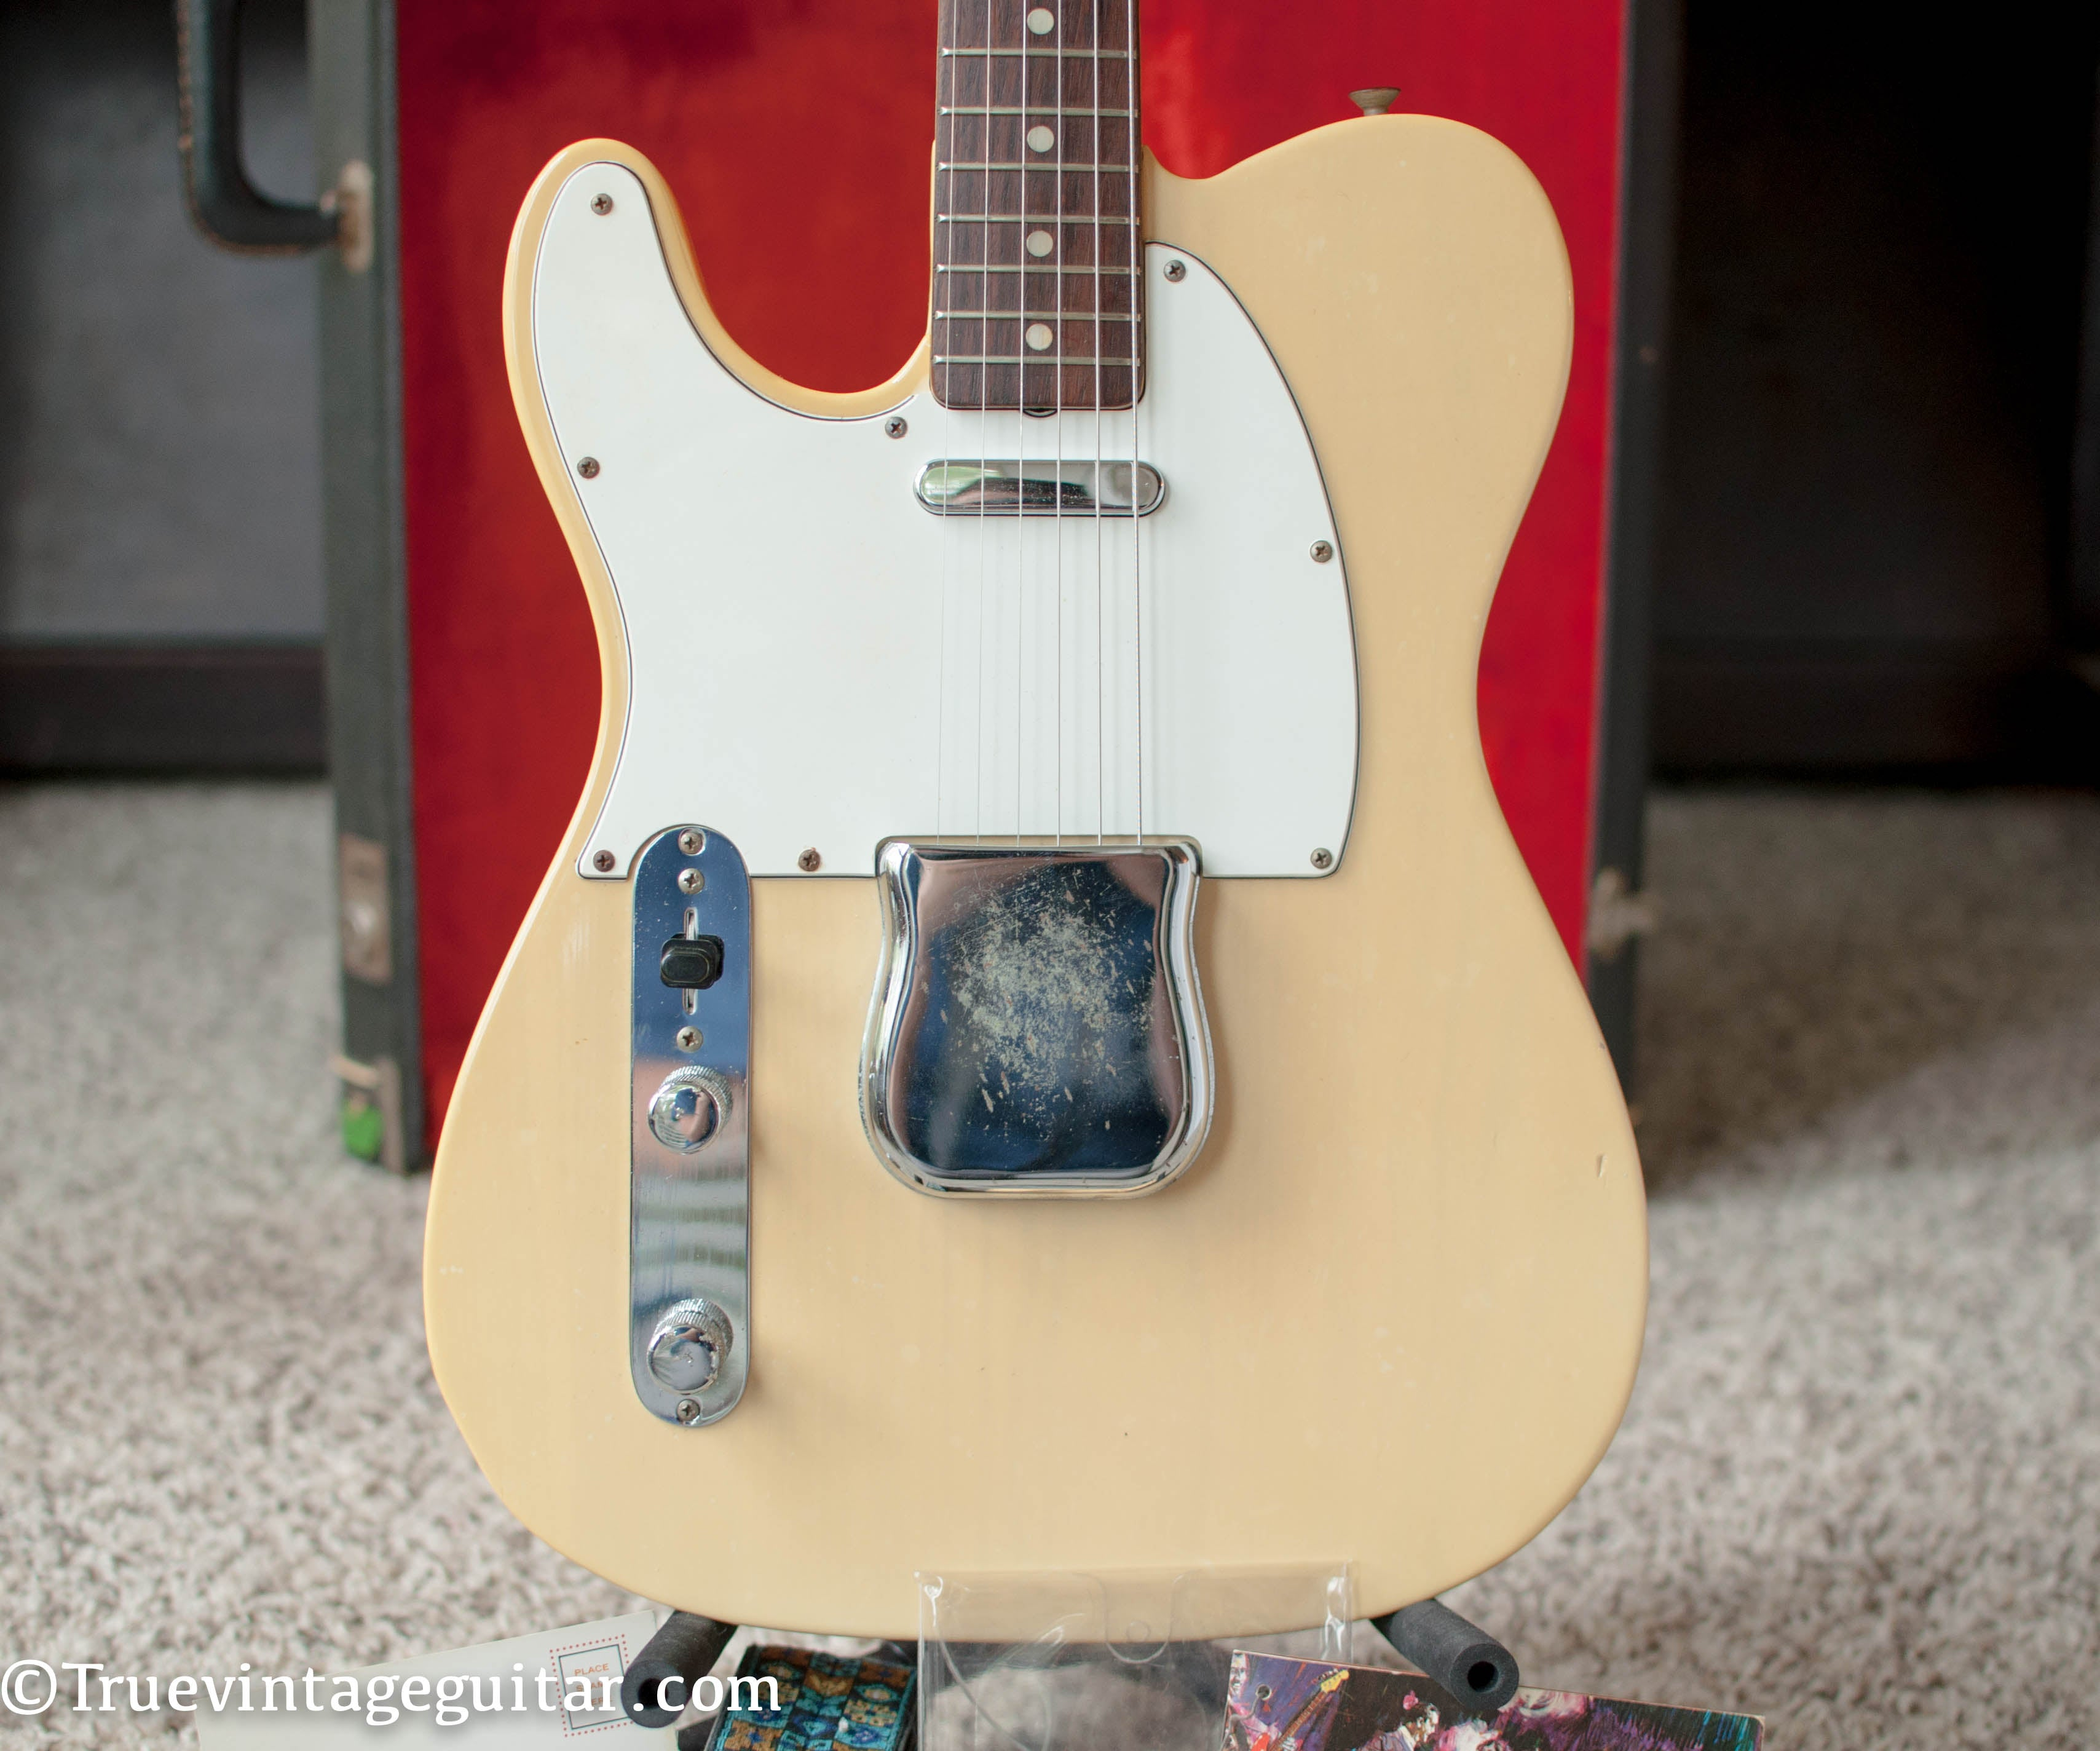 Lefty left handed Telecaster 1972 vintage